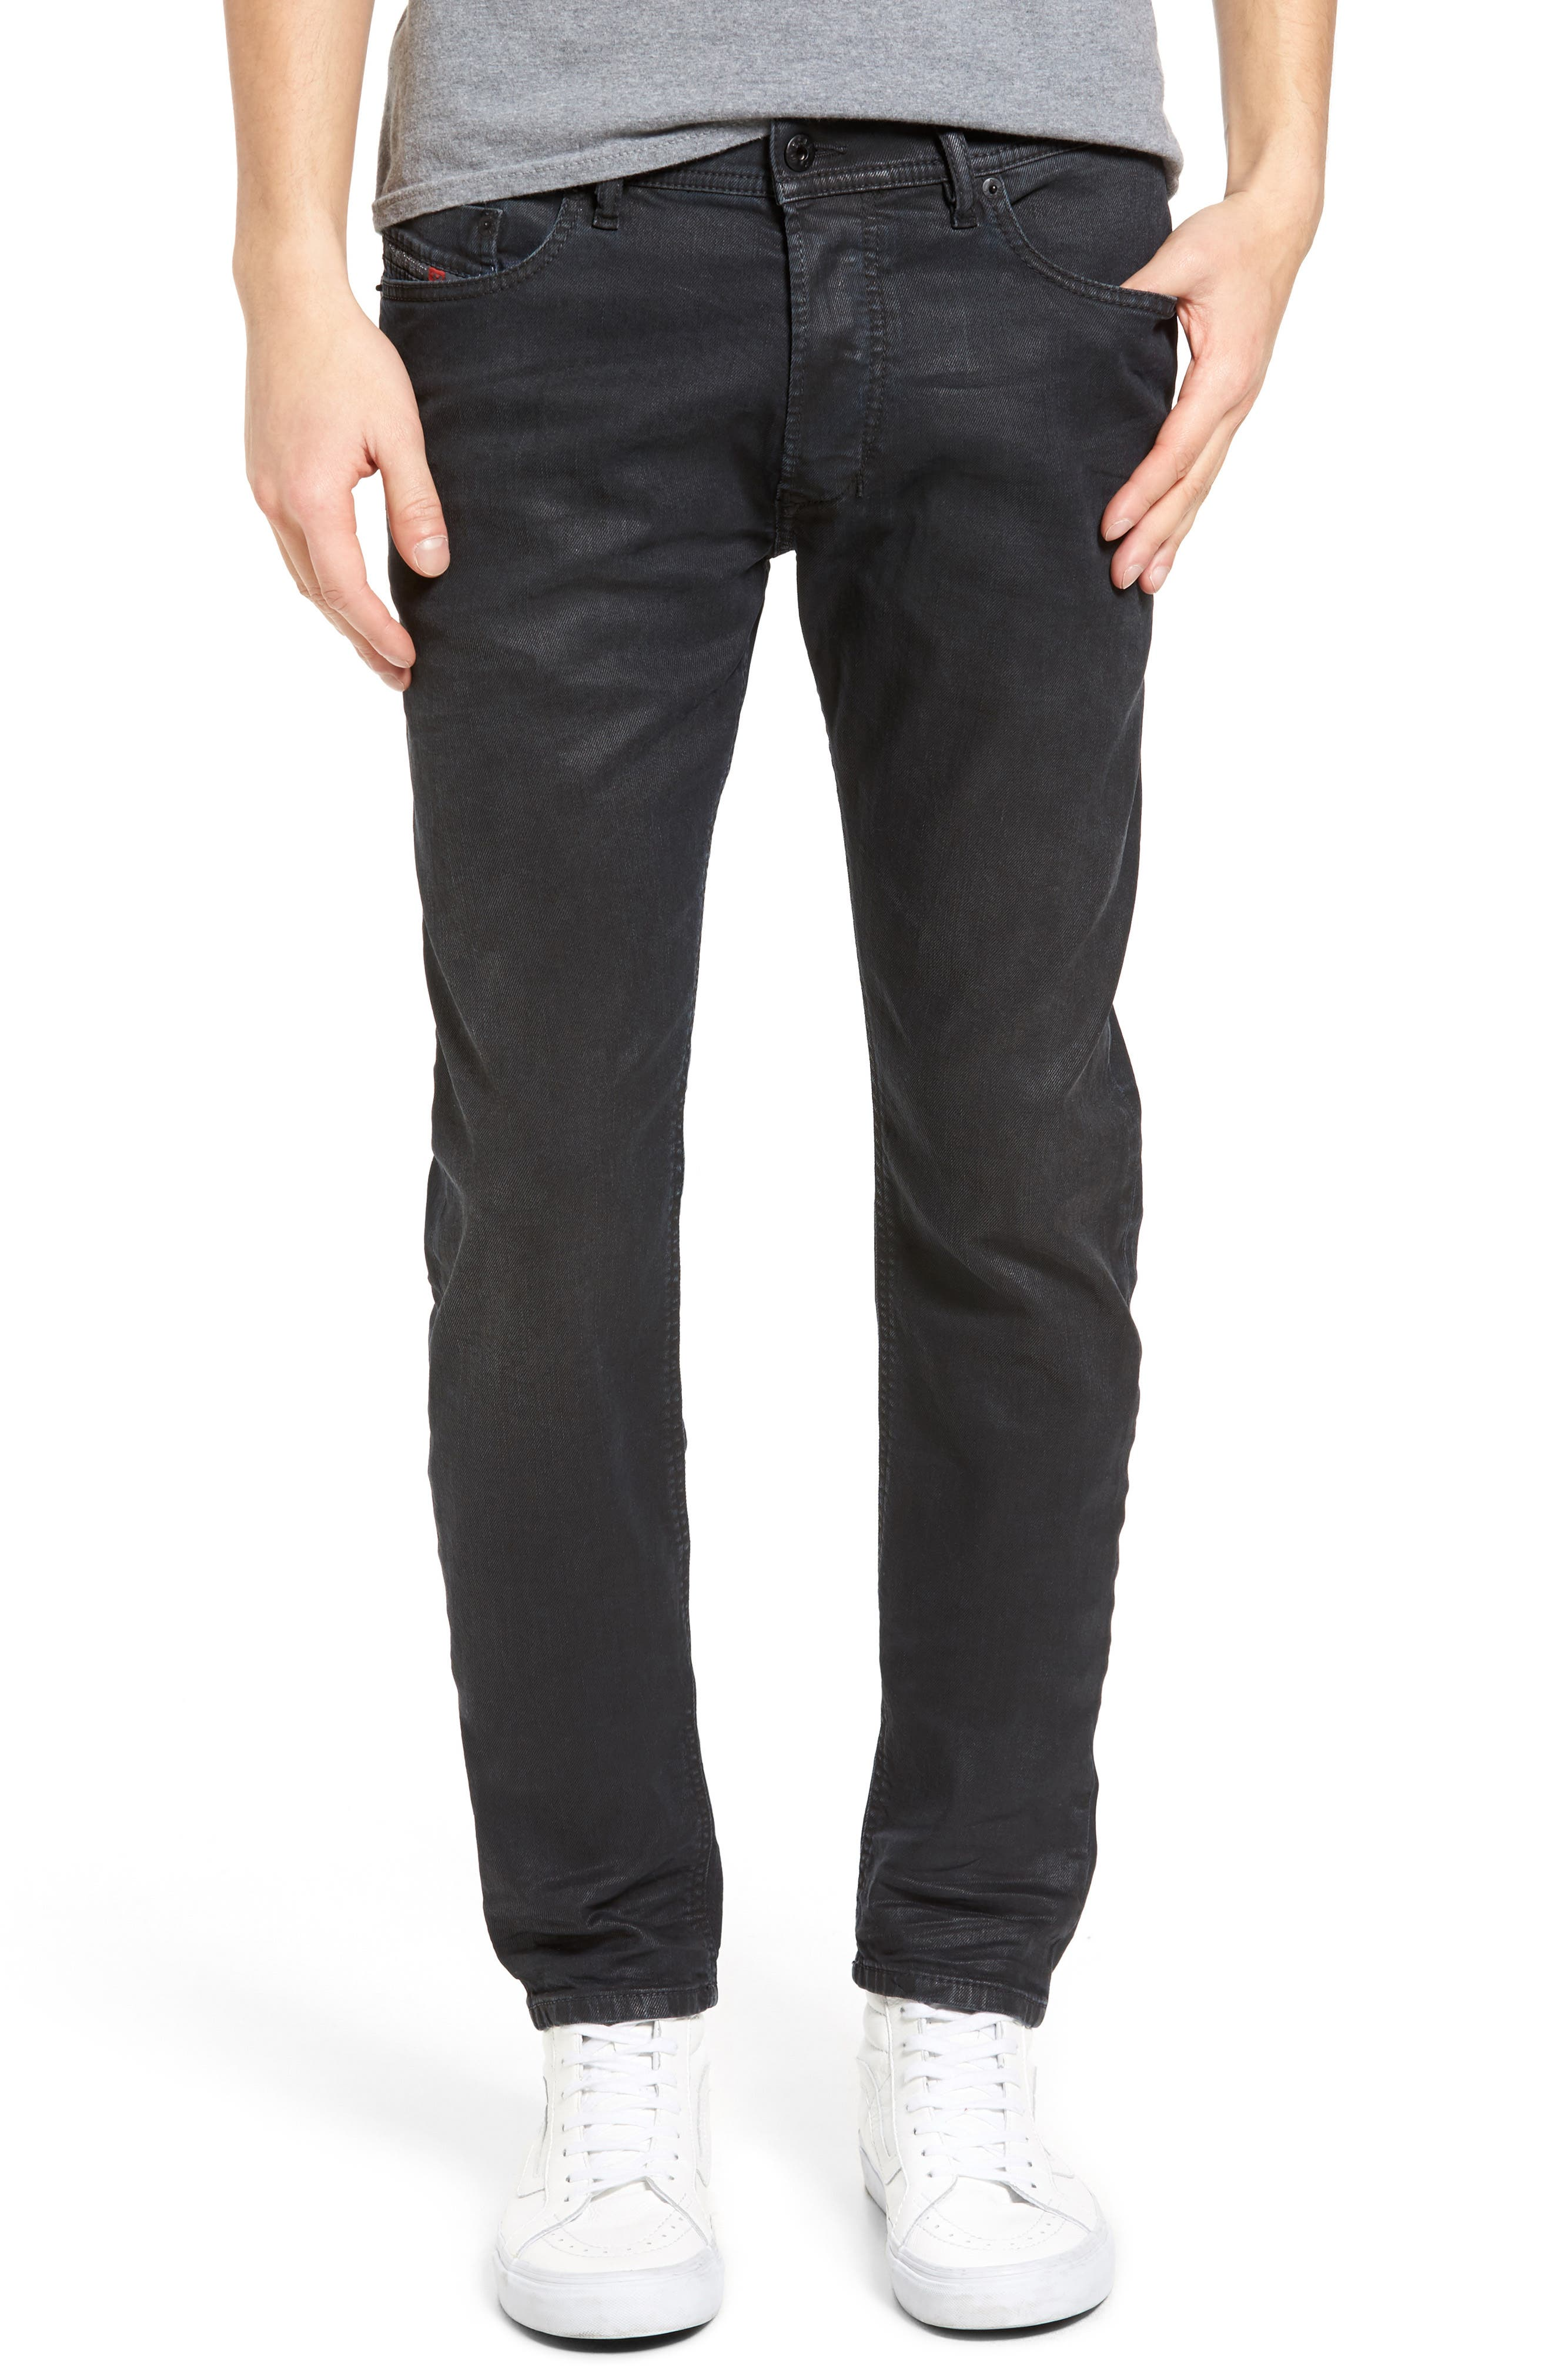 Tepphar Skinny Fit Jeans,                             Main thumbnail 1, color,                             001